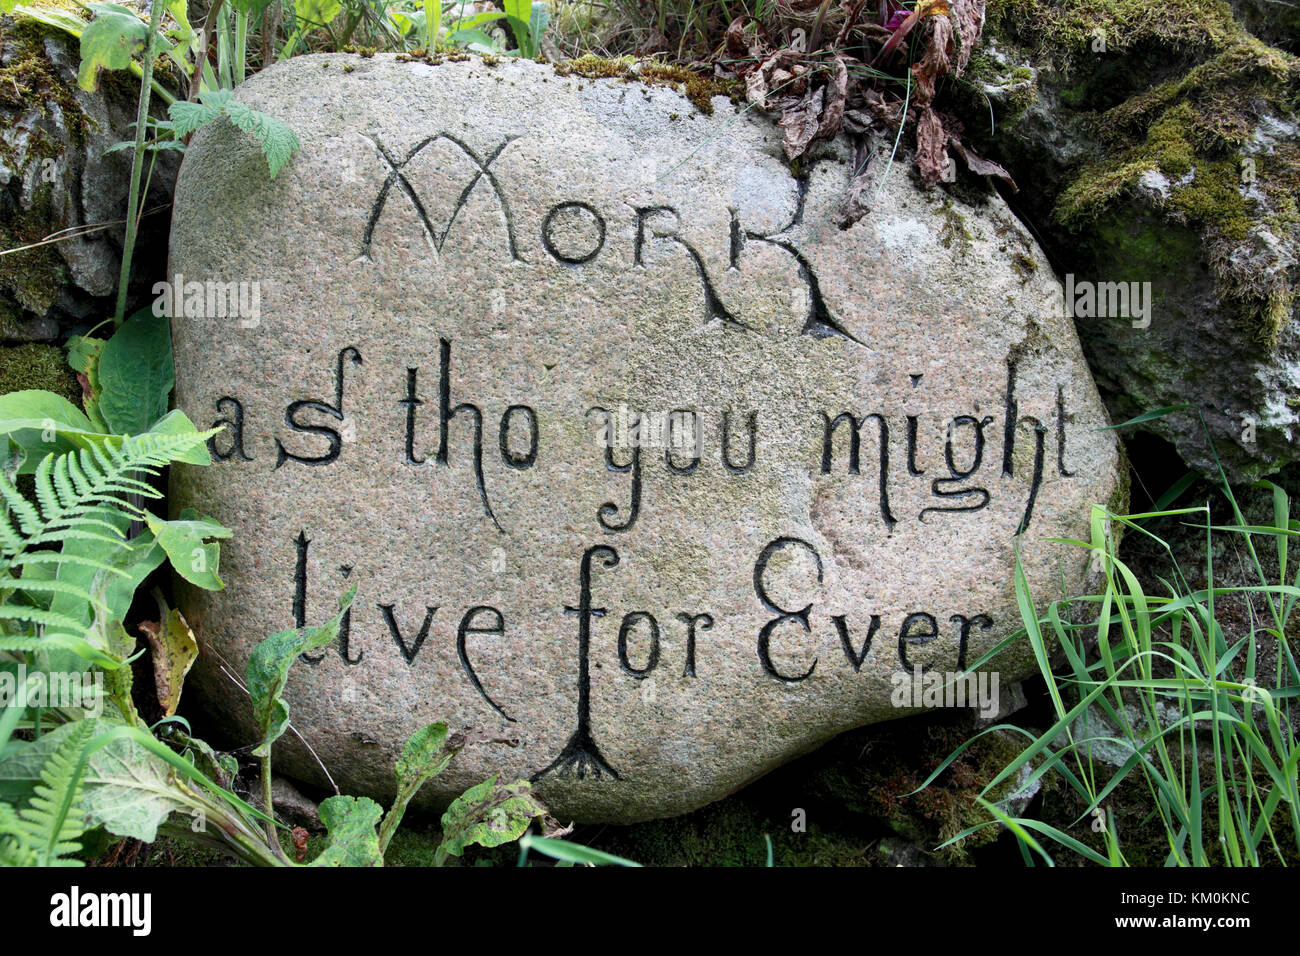 "A stone with the aphorism ""Work as tho' you might live for Ever"" - Stock Image"